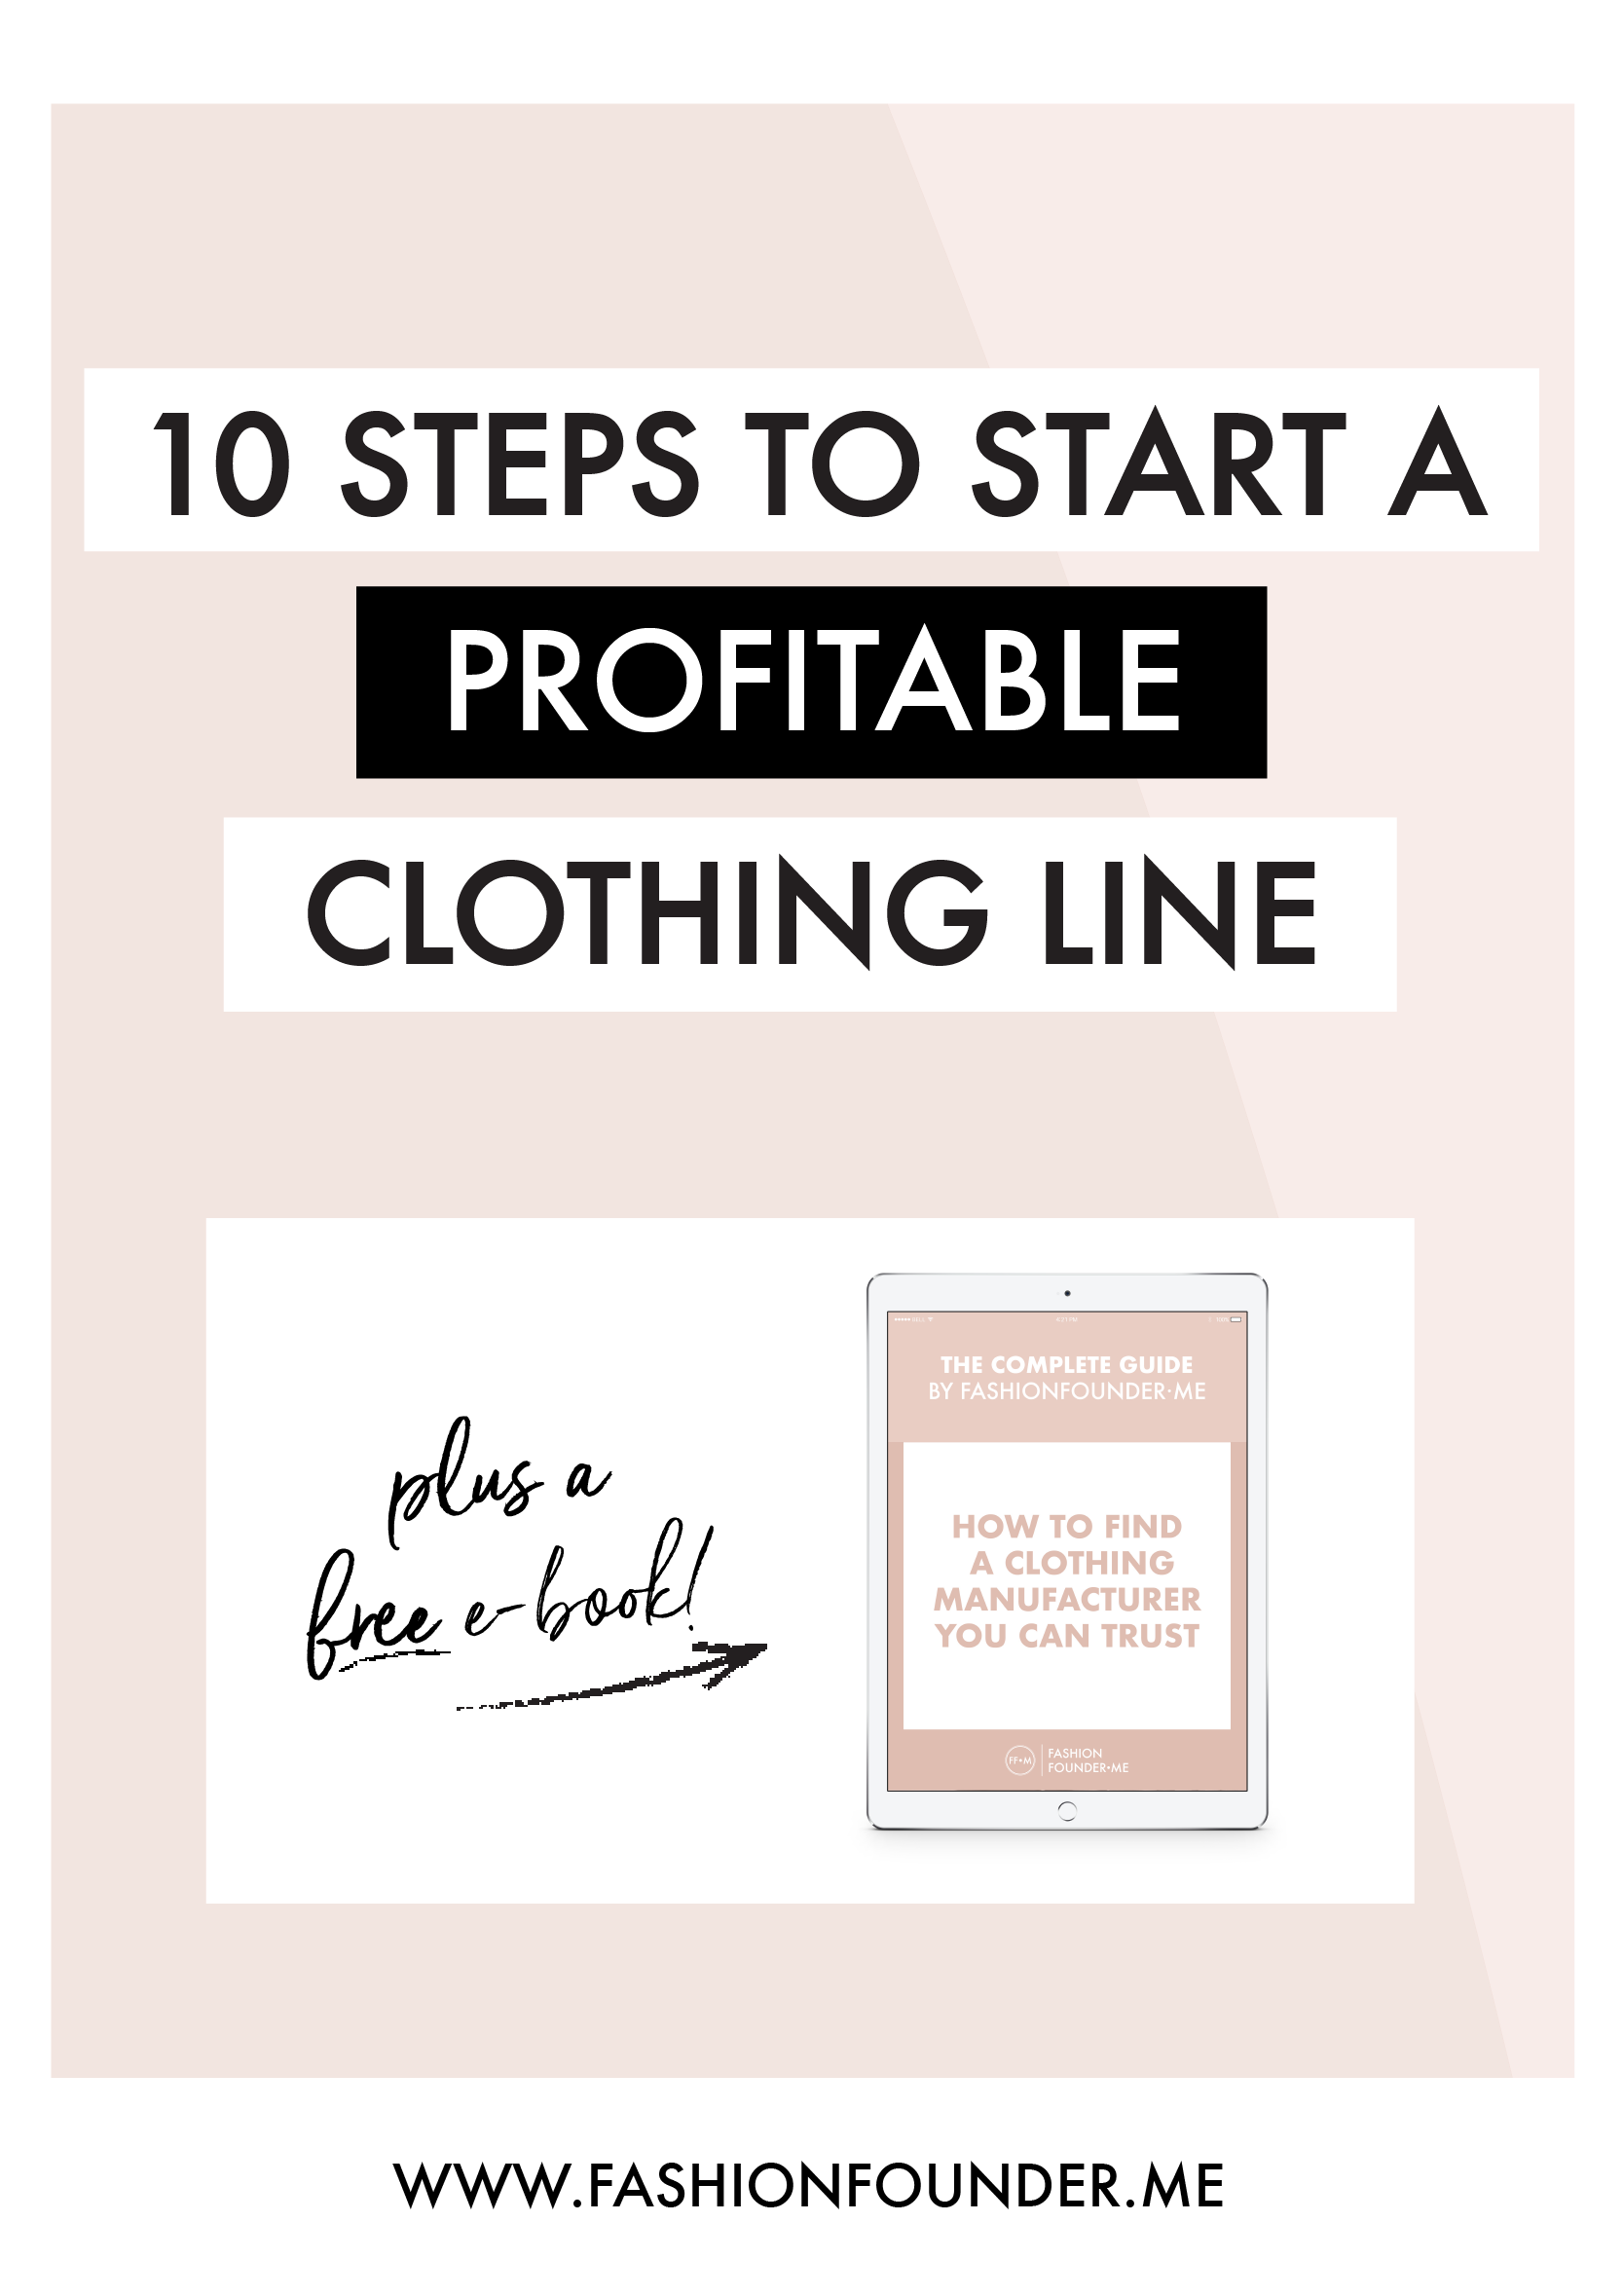 Start A Clothing Line 10 Steps to Make it Profitable